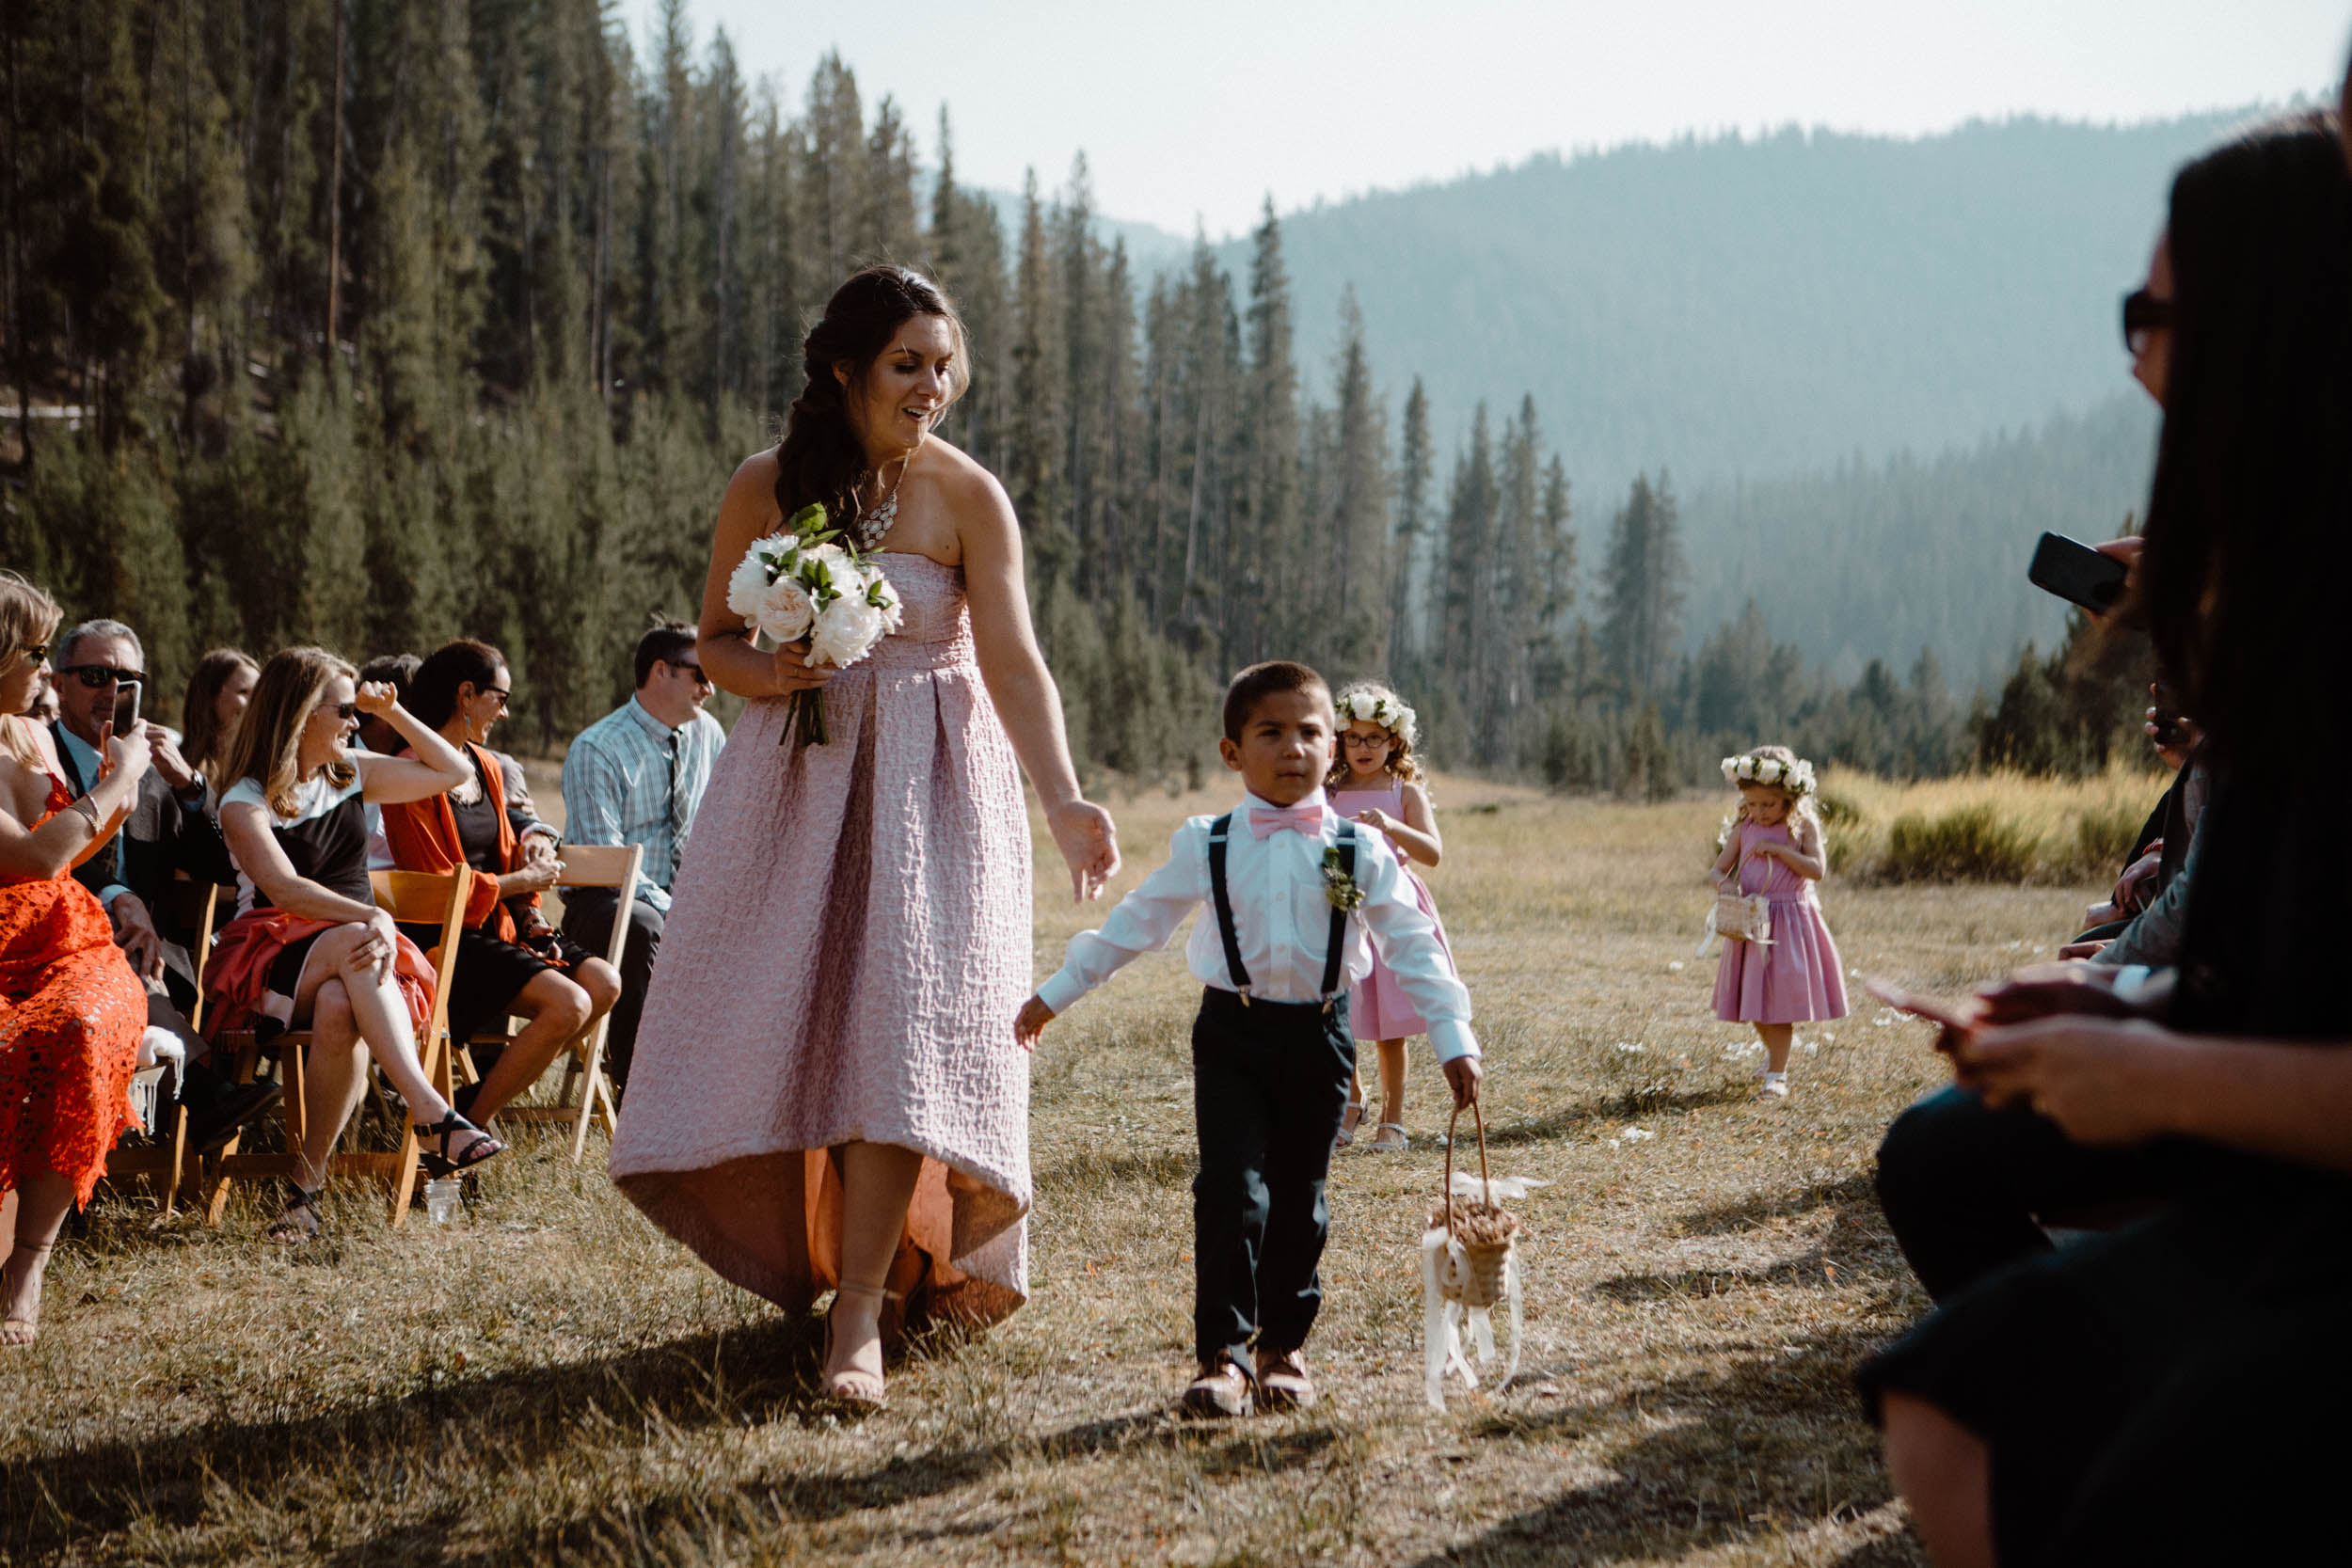 d_a_Galena_lodge_wedding-38.jpg